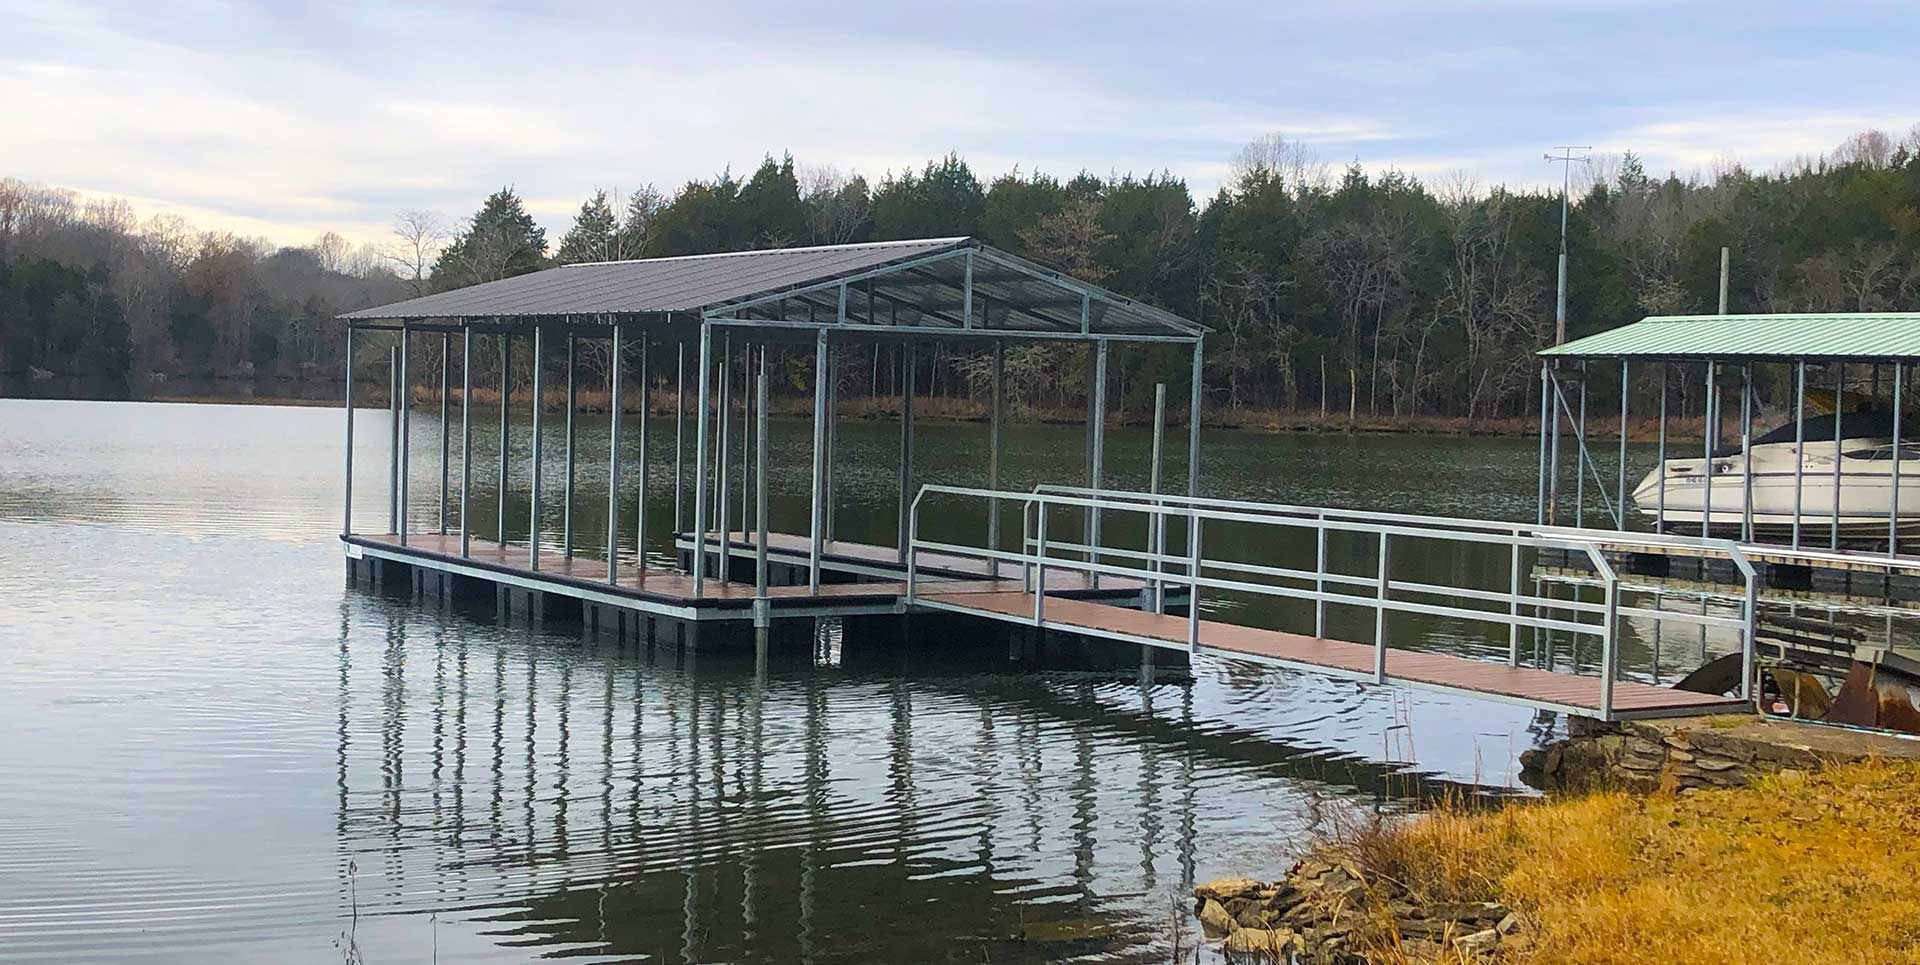 Boat Dock on River with Gangway and trees in background